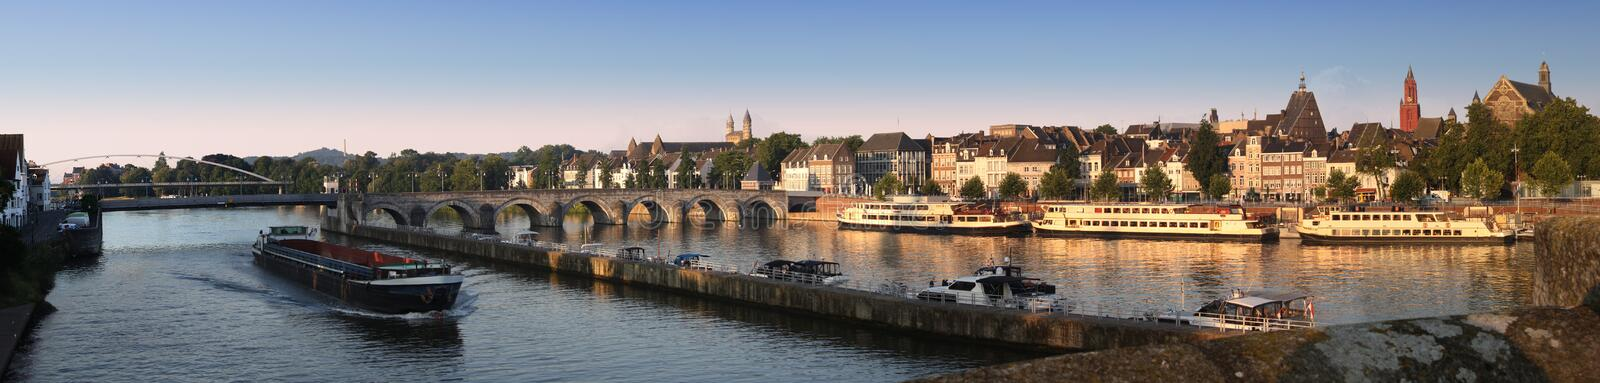 Maastricht, in the Netherlands stock photos